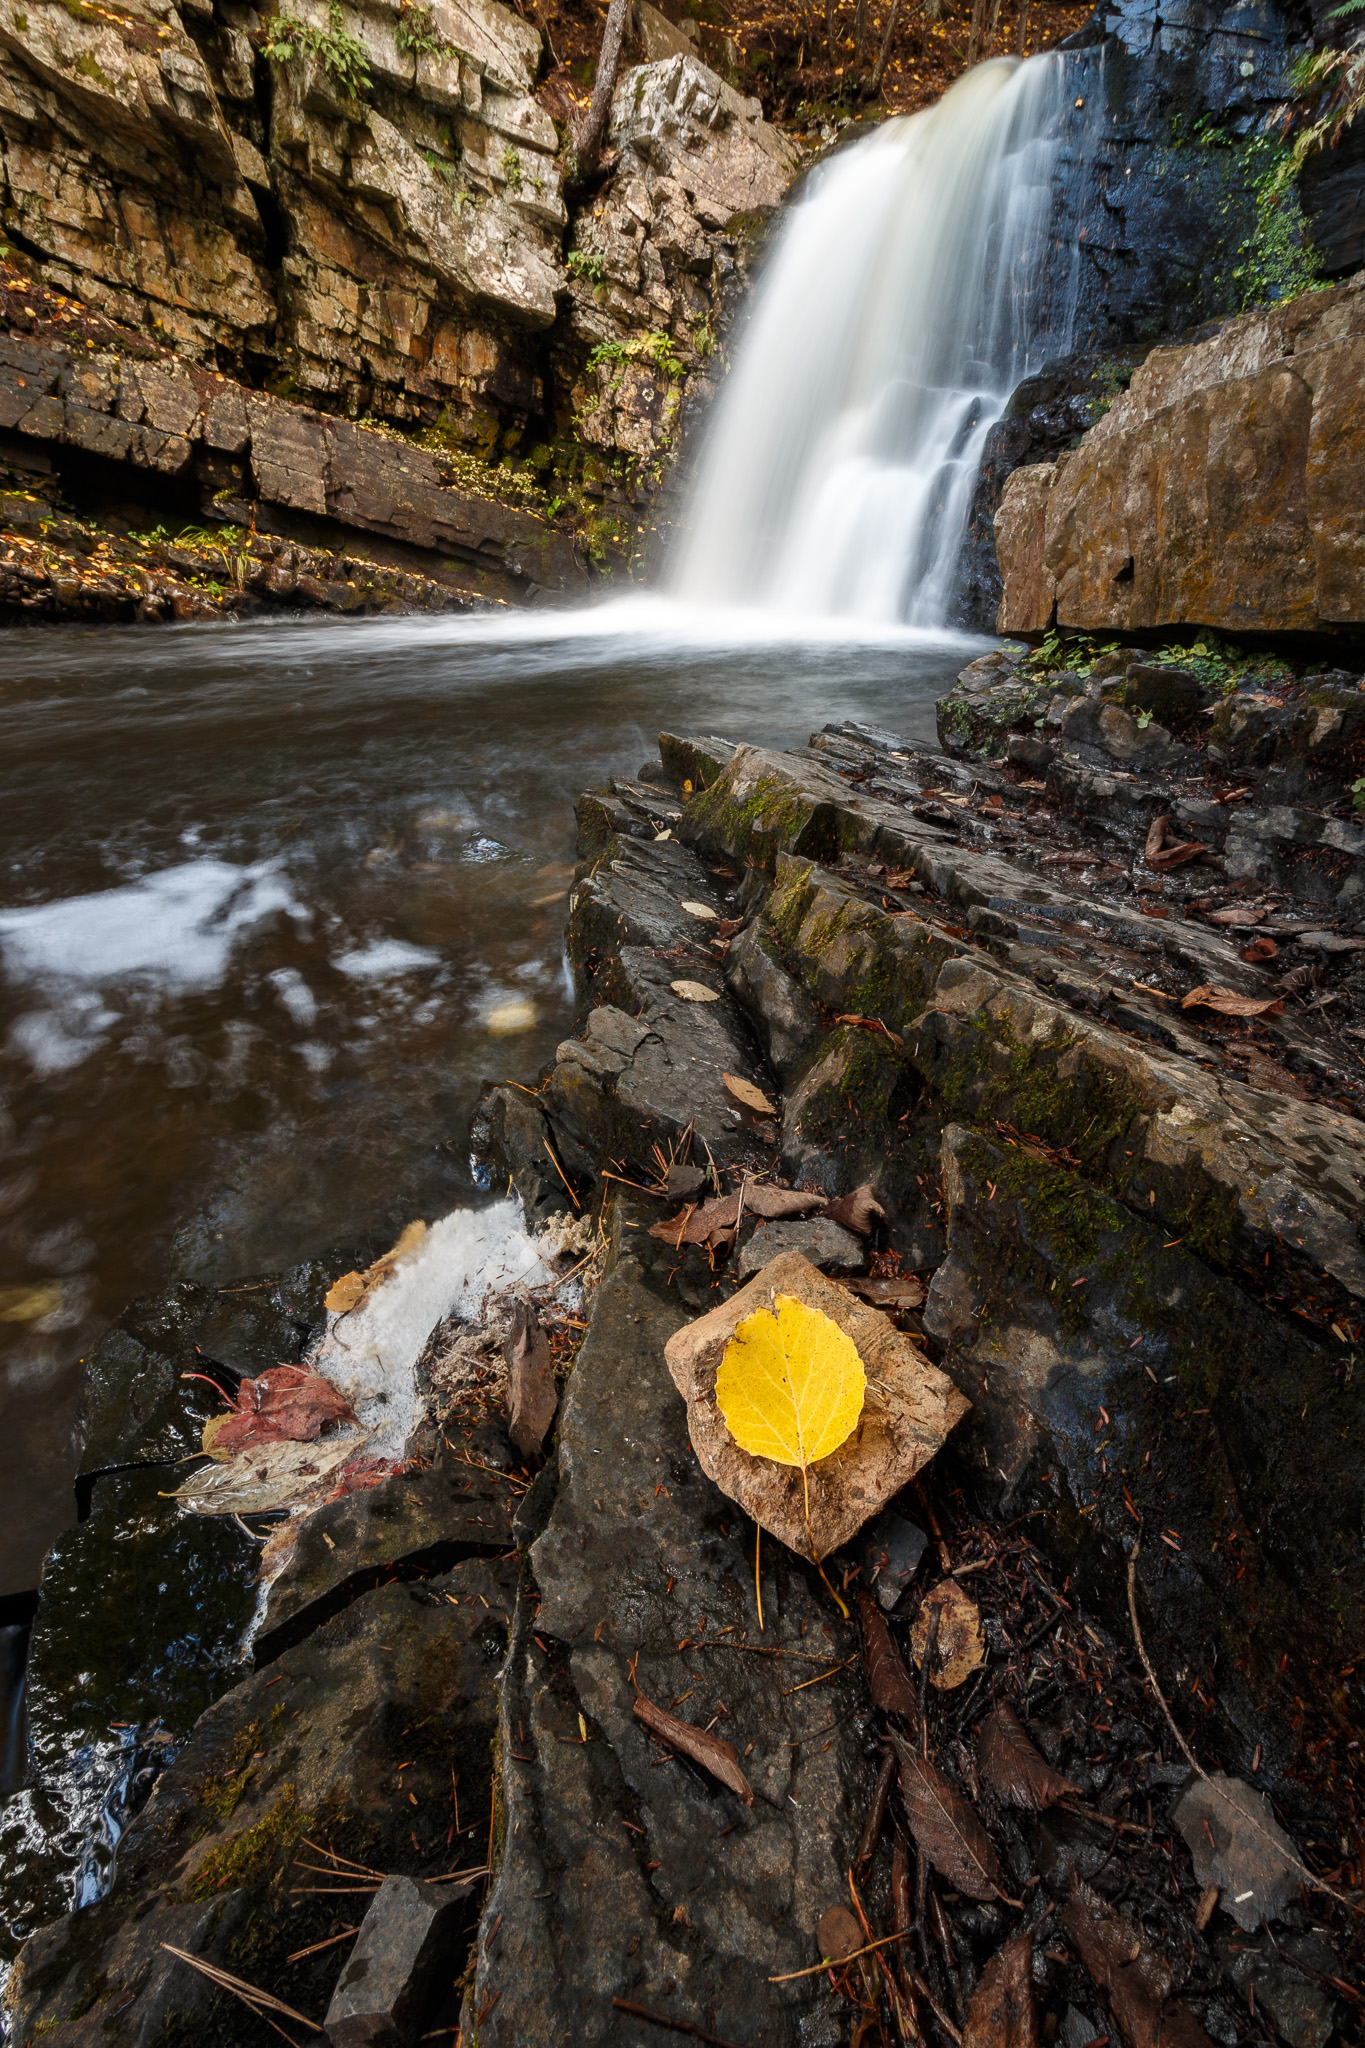 Ettinger Falls with Fall Leaf in the Foreground